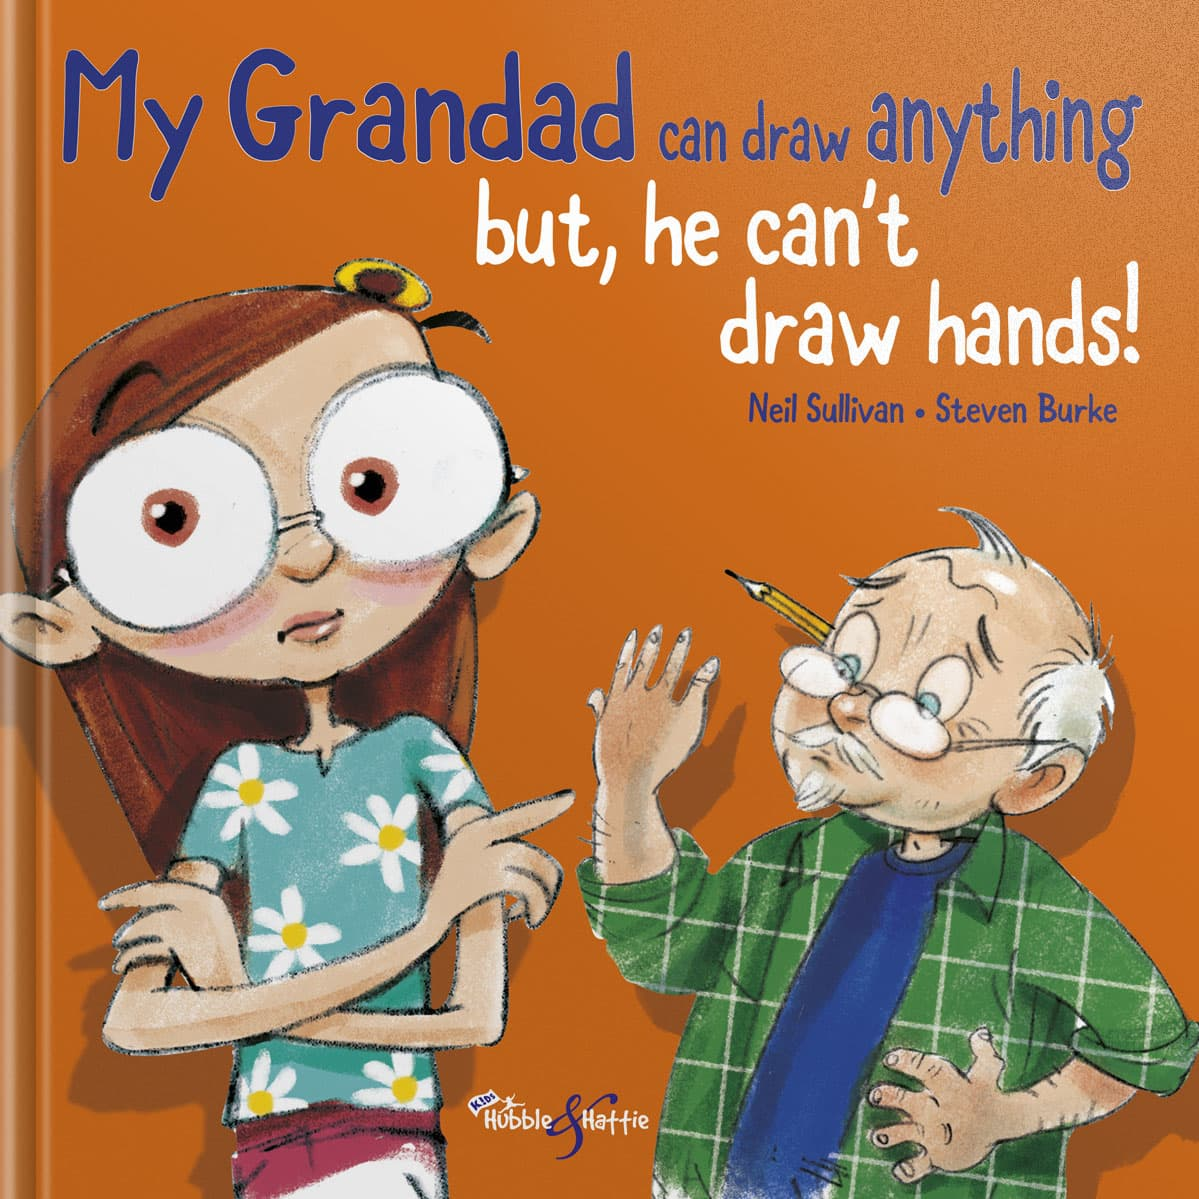 My Grandad can draw anything –BUT he can't draw hands!